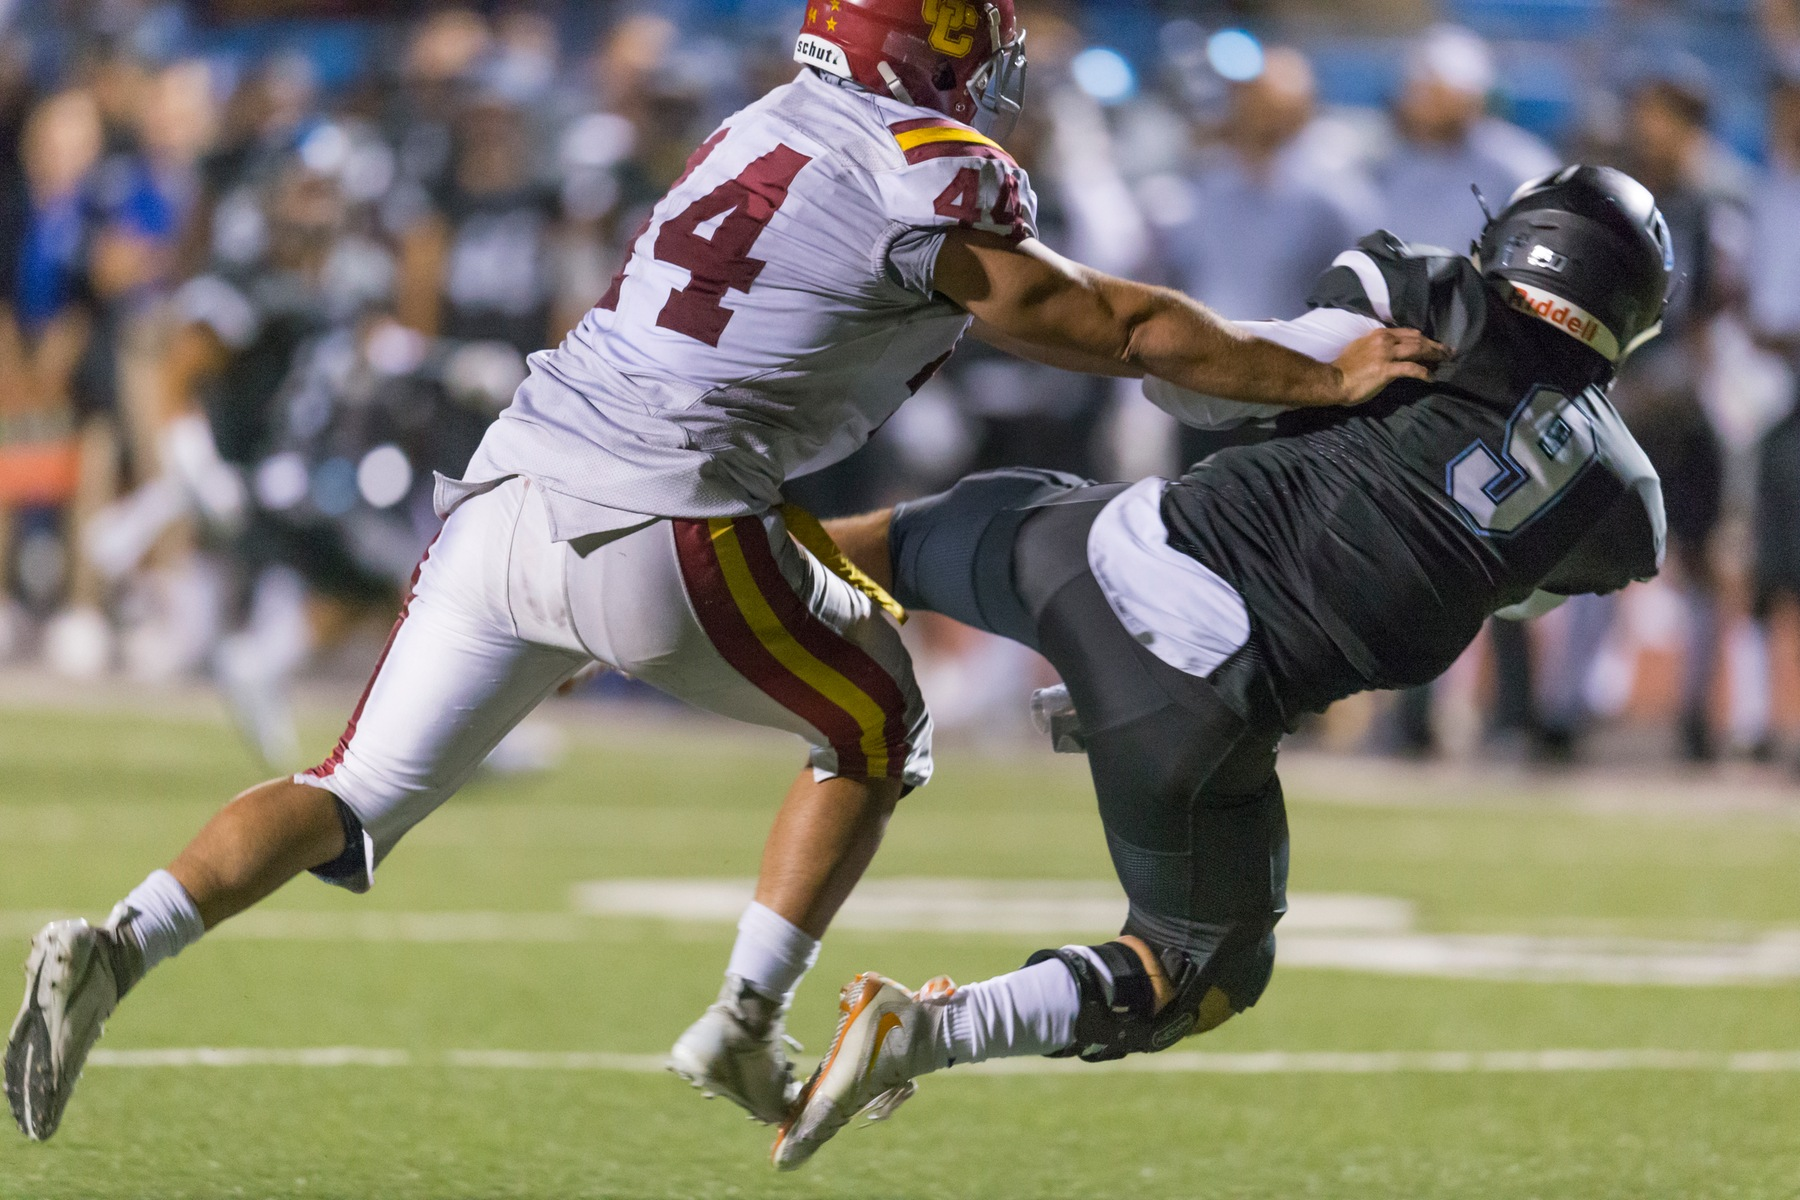 Glendale strikes early and often in 40-23 win over L.A. Valley for second straight victory